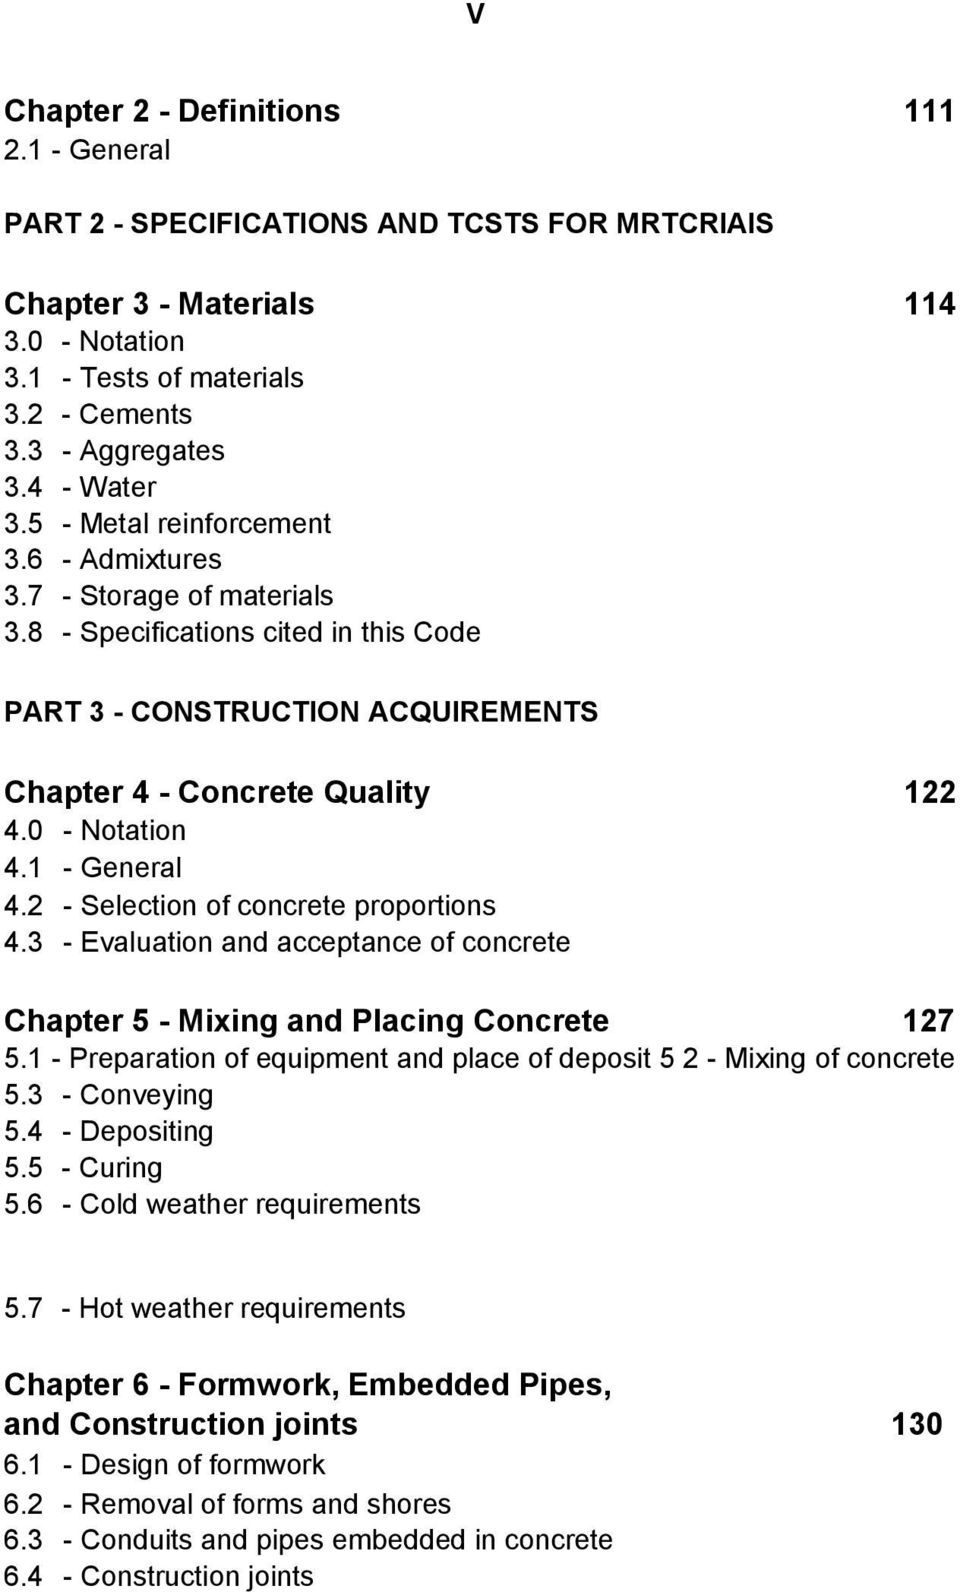 0 - Notation 4.1 - General 4.2 - Selection of concrete proportions 4.3 - Evaluation and acceptance of concrete Chapter 5 - Mixing and Placing Concrete 127 5.